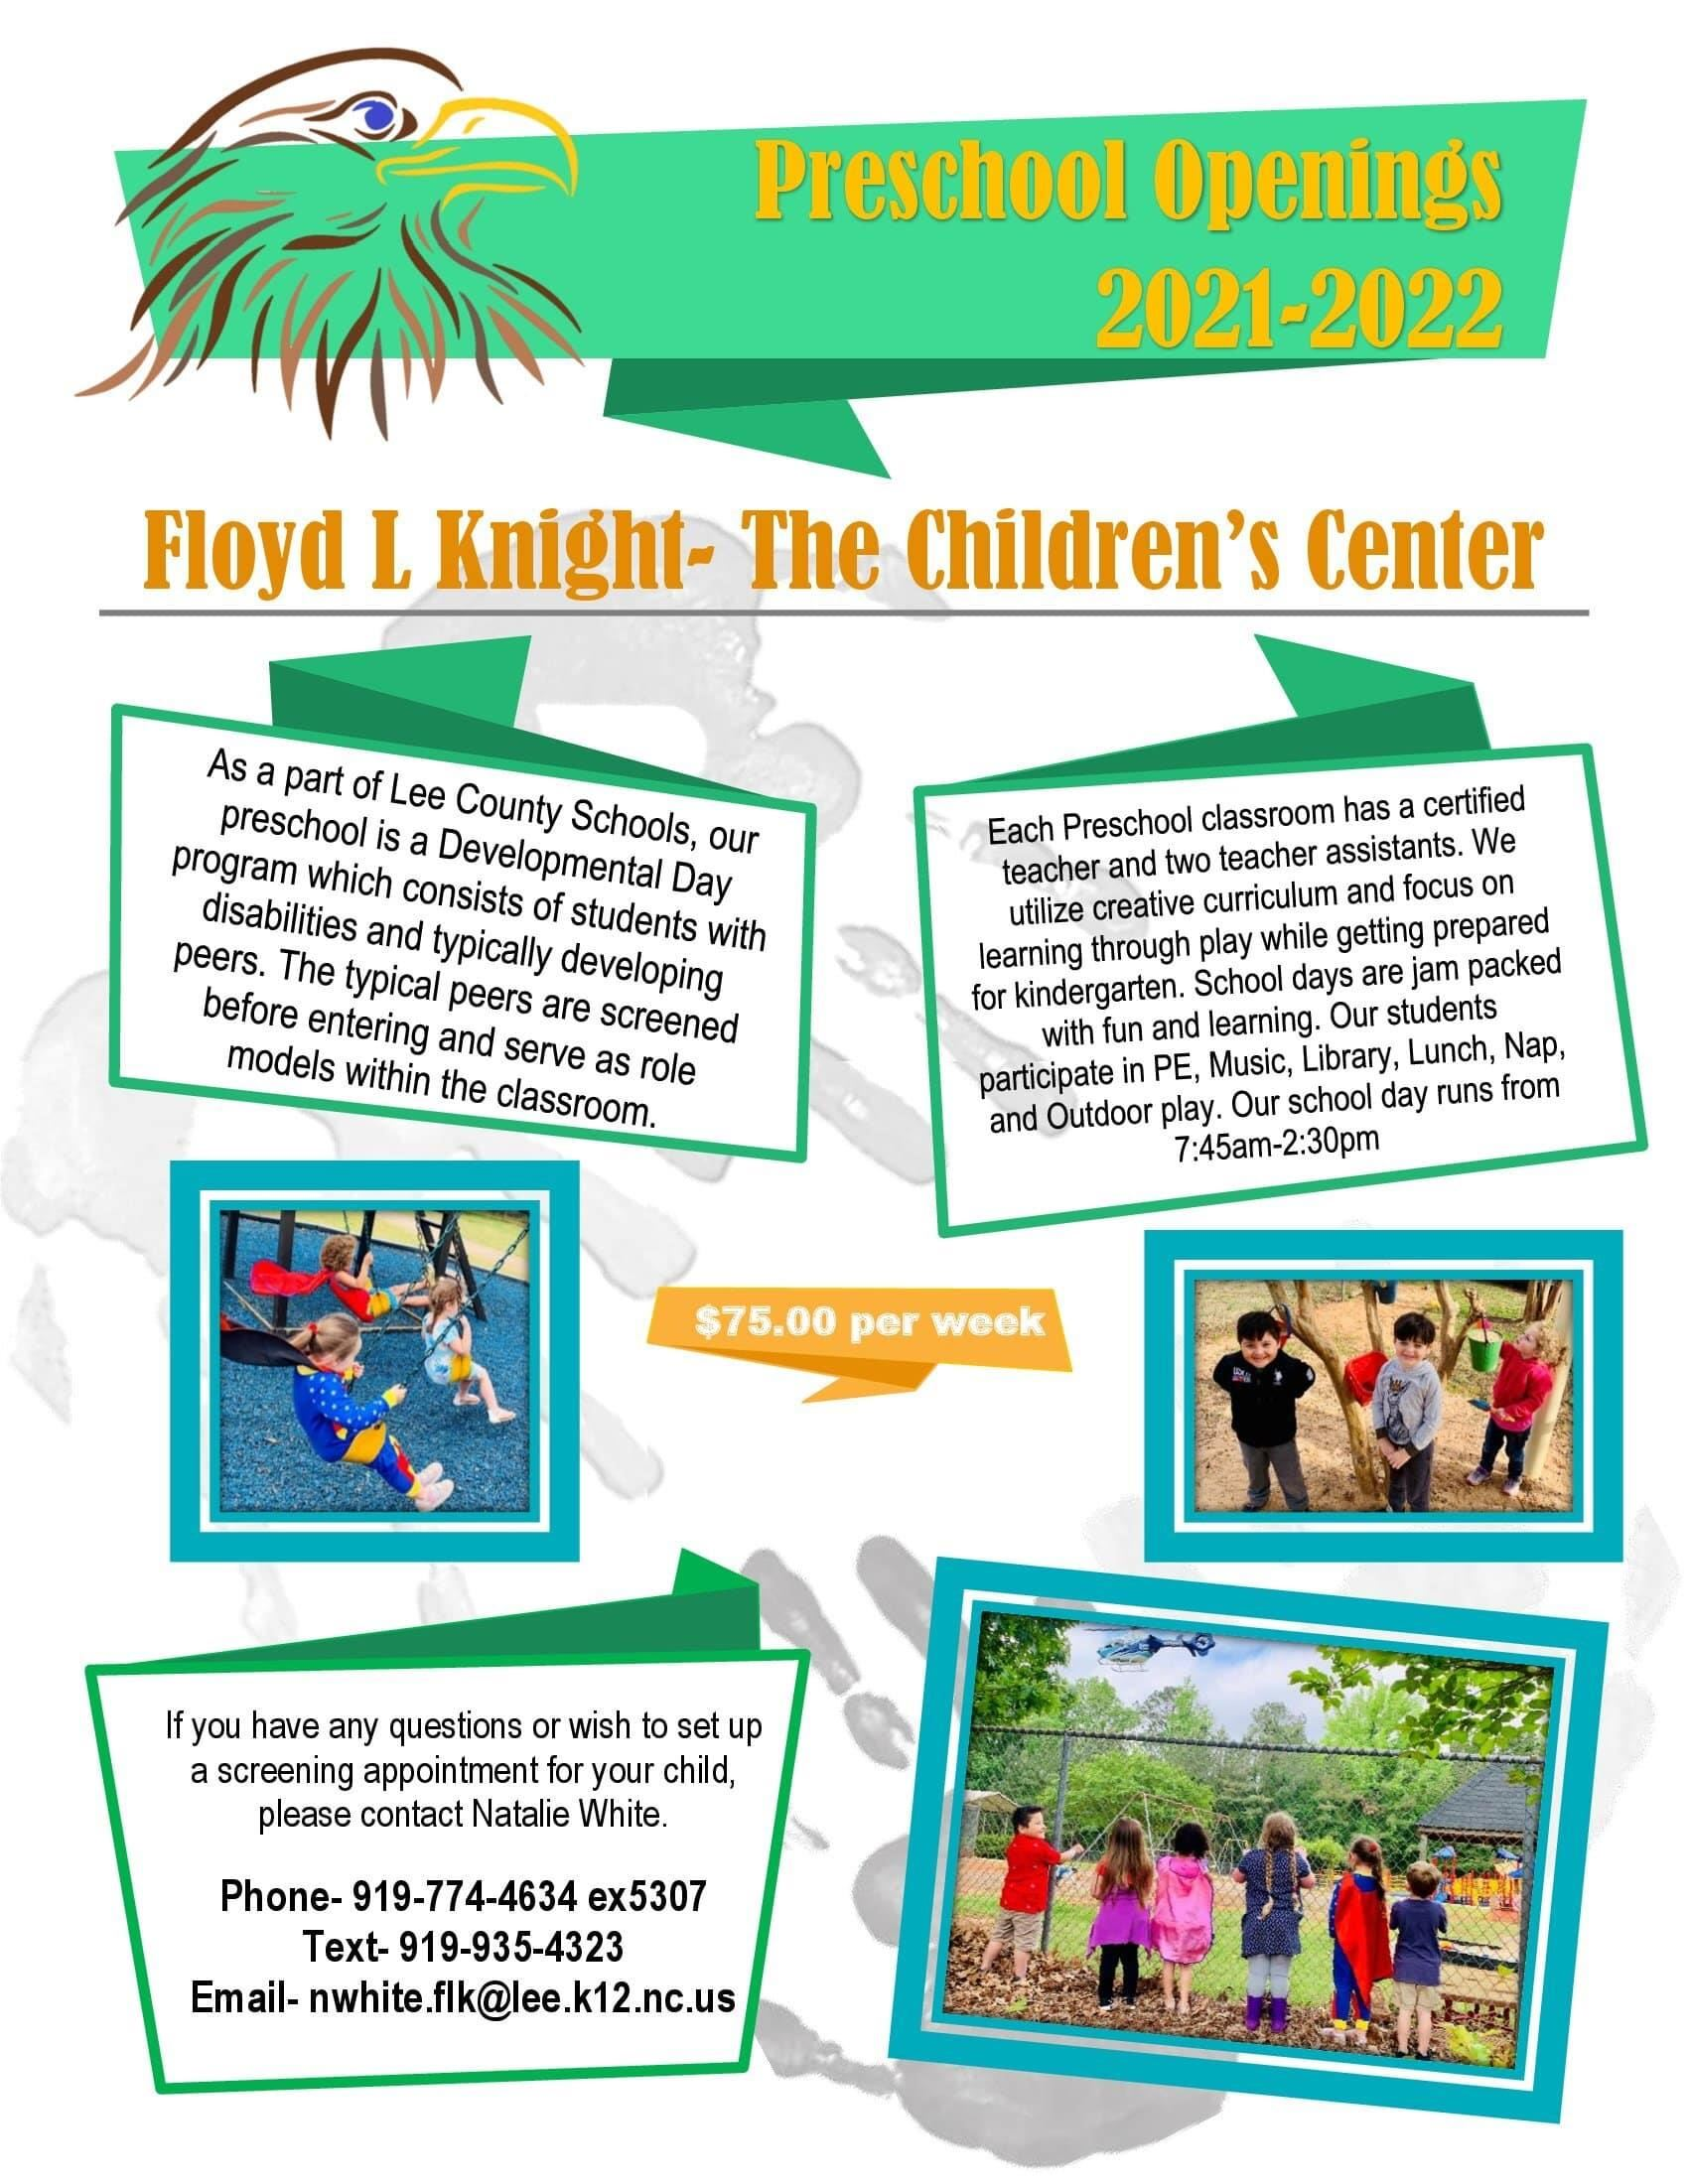 Floyd L. Knight Preschool Openings for the 2021-2022 School Year